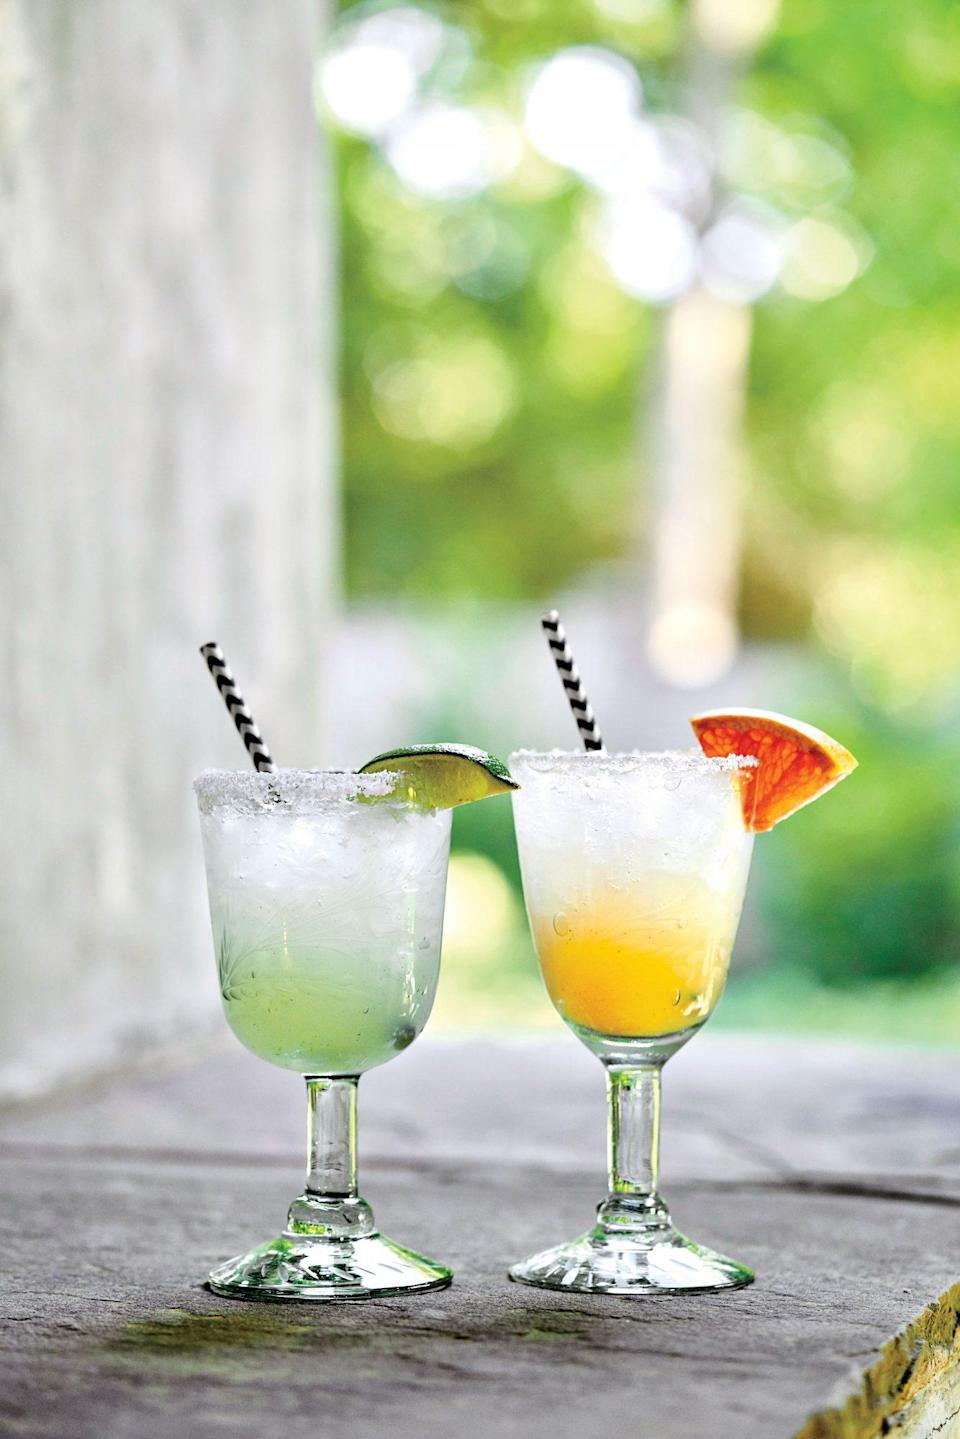 """<p><strong>Recipe: <a href=""""https://www.southernliving.com/recipes/mcguires-paloma-recipe"""" rel=""""nofollow noopener"""" target=""""_blank"""" data-ylk=""""slk:McGuire's Paloma"""" class=""""link rapid-noclick-resp"""">McGuire's Paloma</a></strong></p> <p>A paloma is like a fruitier, mellow version of a margarita with grapefruit juice, and this recipe gives the perfect opportunity to add Twist of Grapefruit Topo Chico. </p>"""